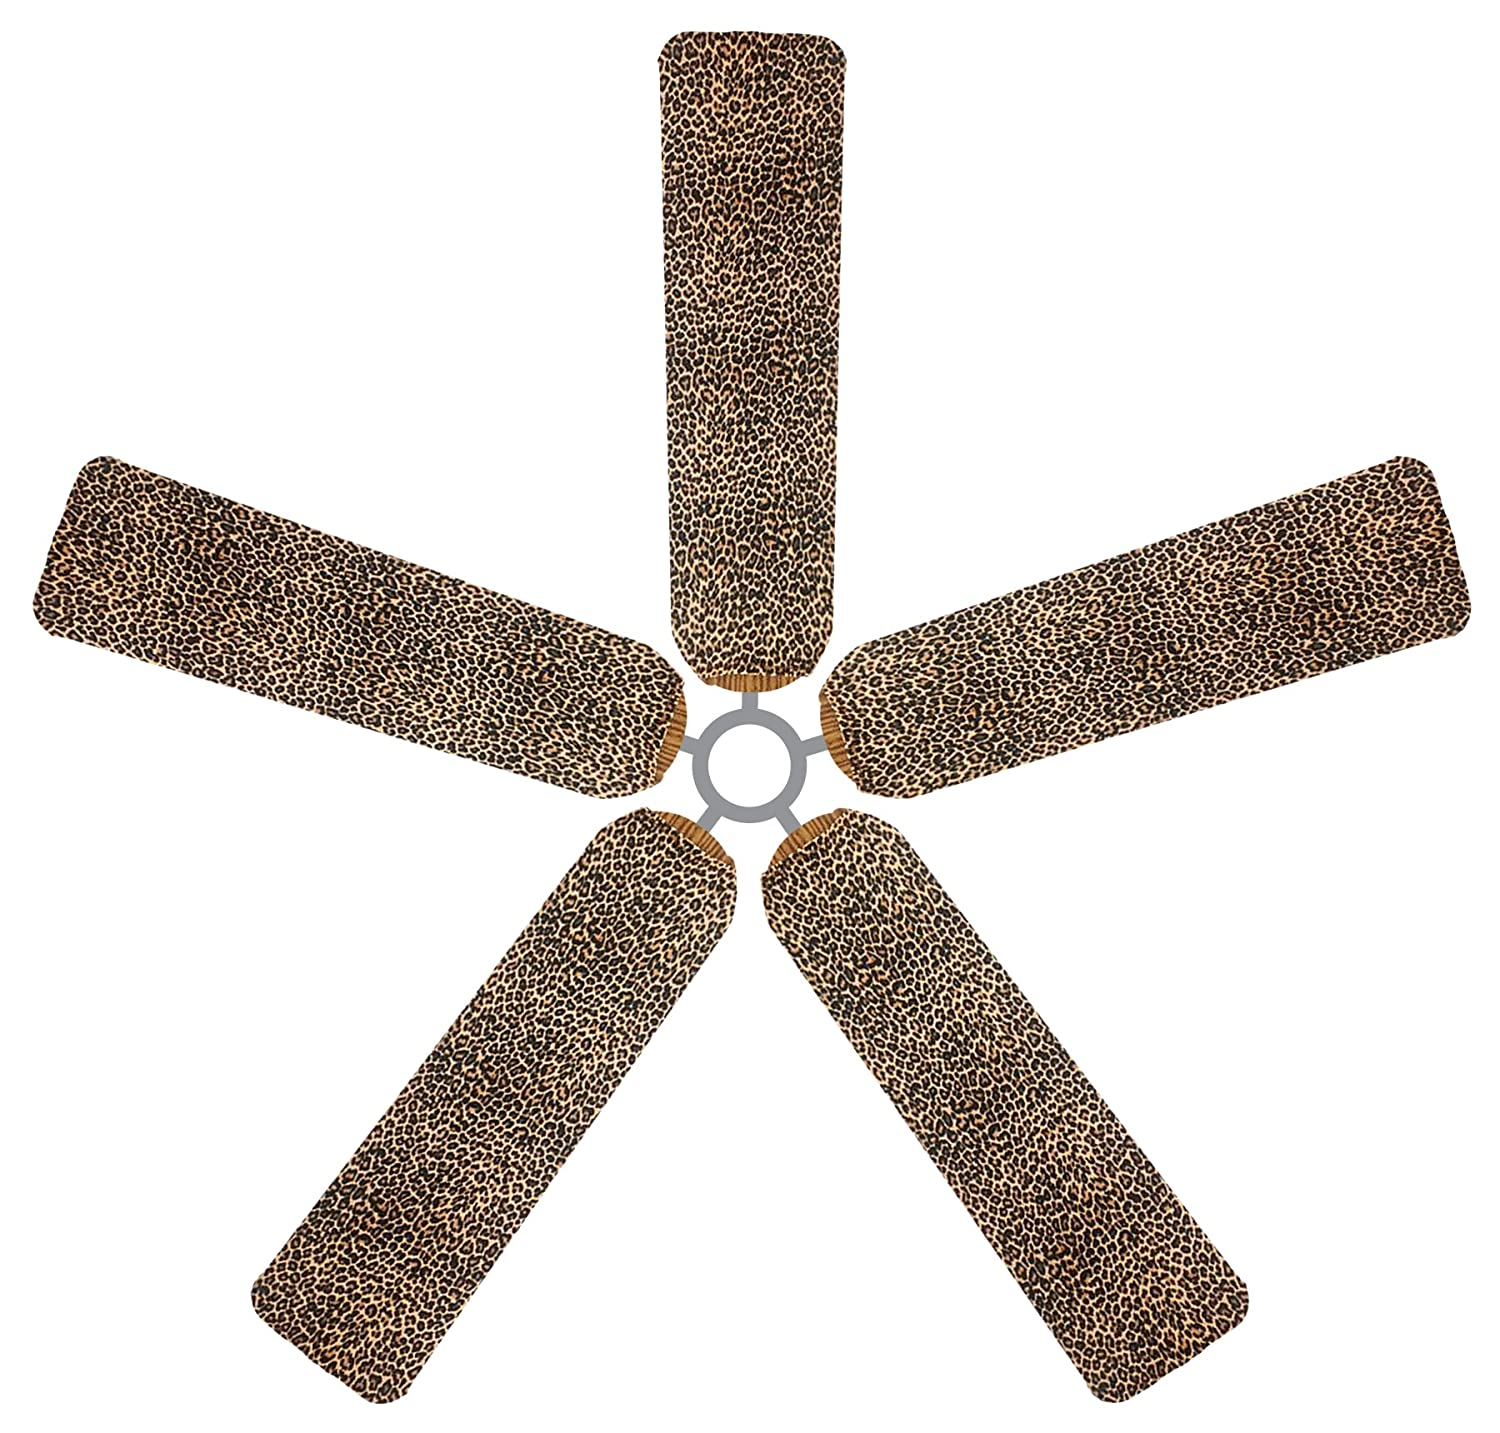 Ceiling Fan Replacement Blades Amazon